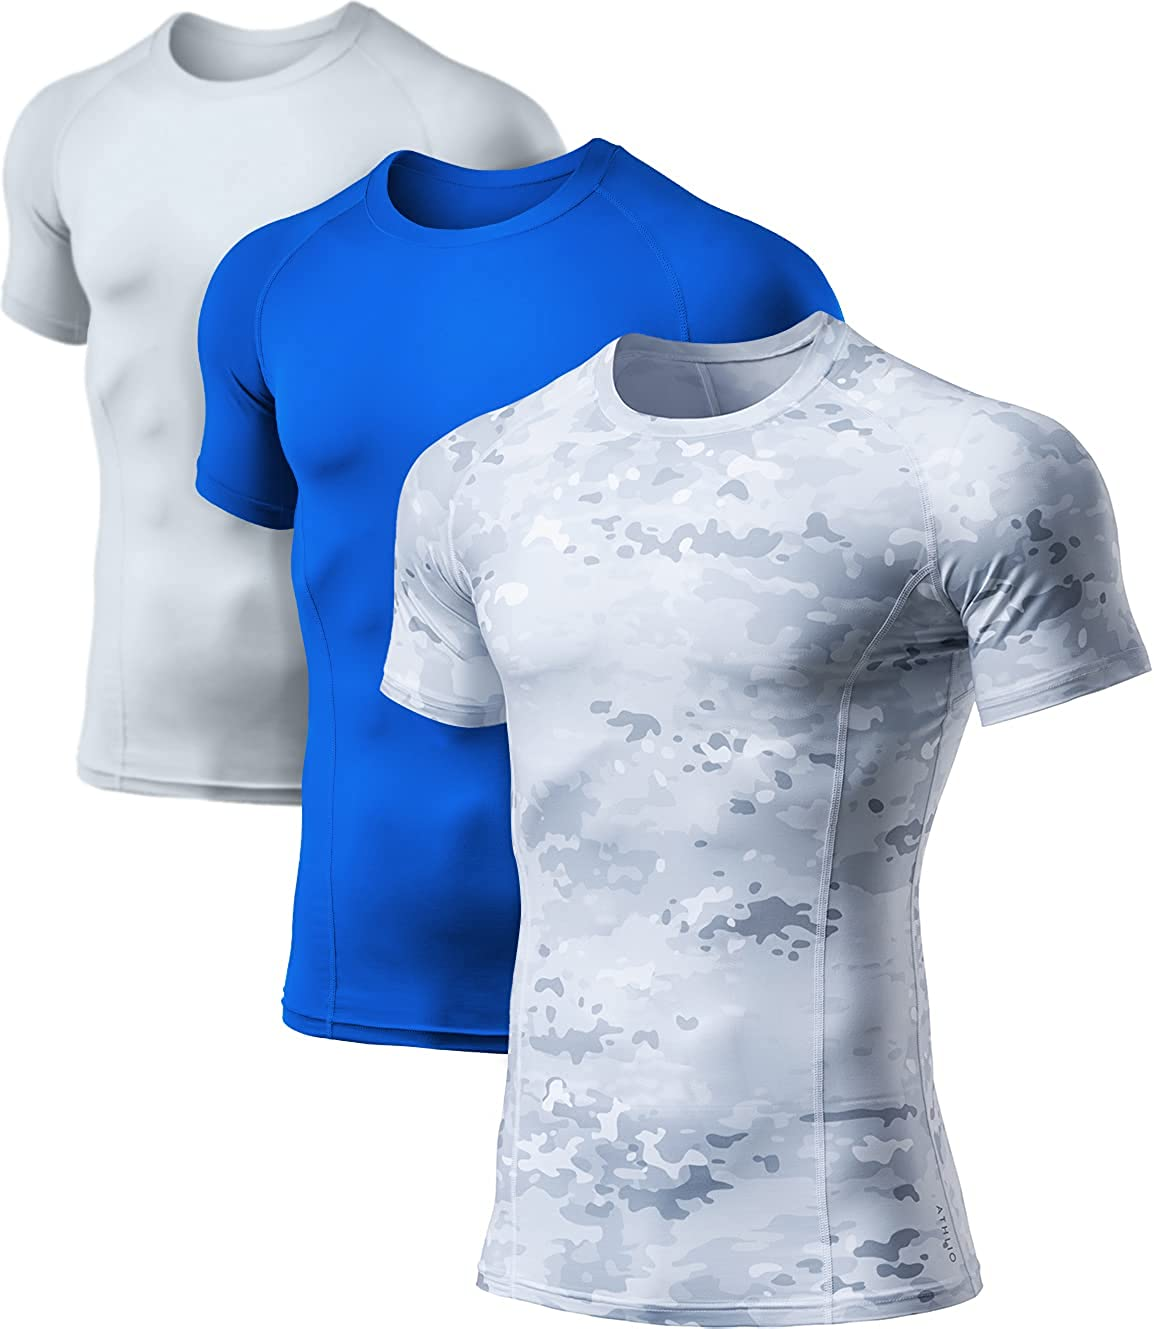 ATHLIO 1 or 3 Pack Men's supreme Super beauty product restock quality top Sleeve Short Cool Dry Shirt Compression